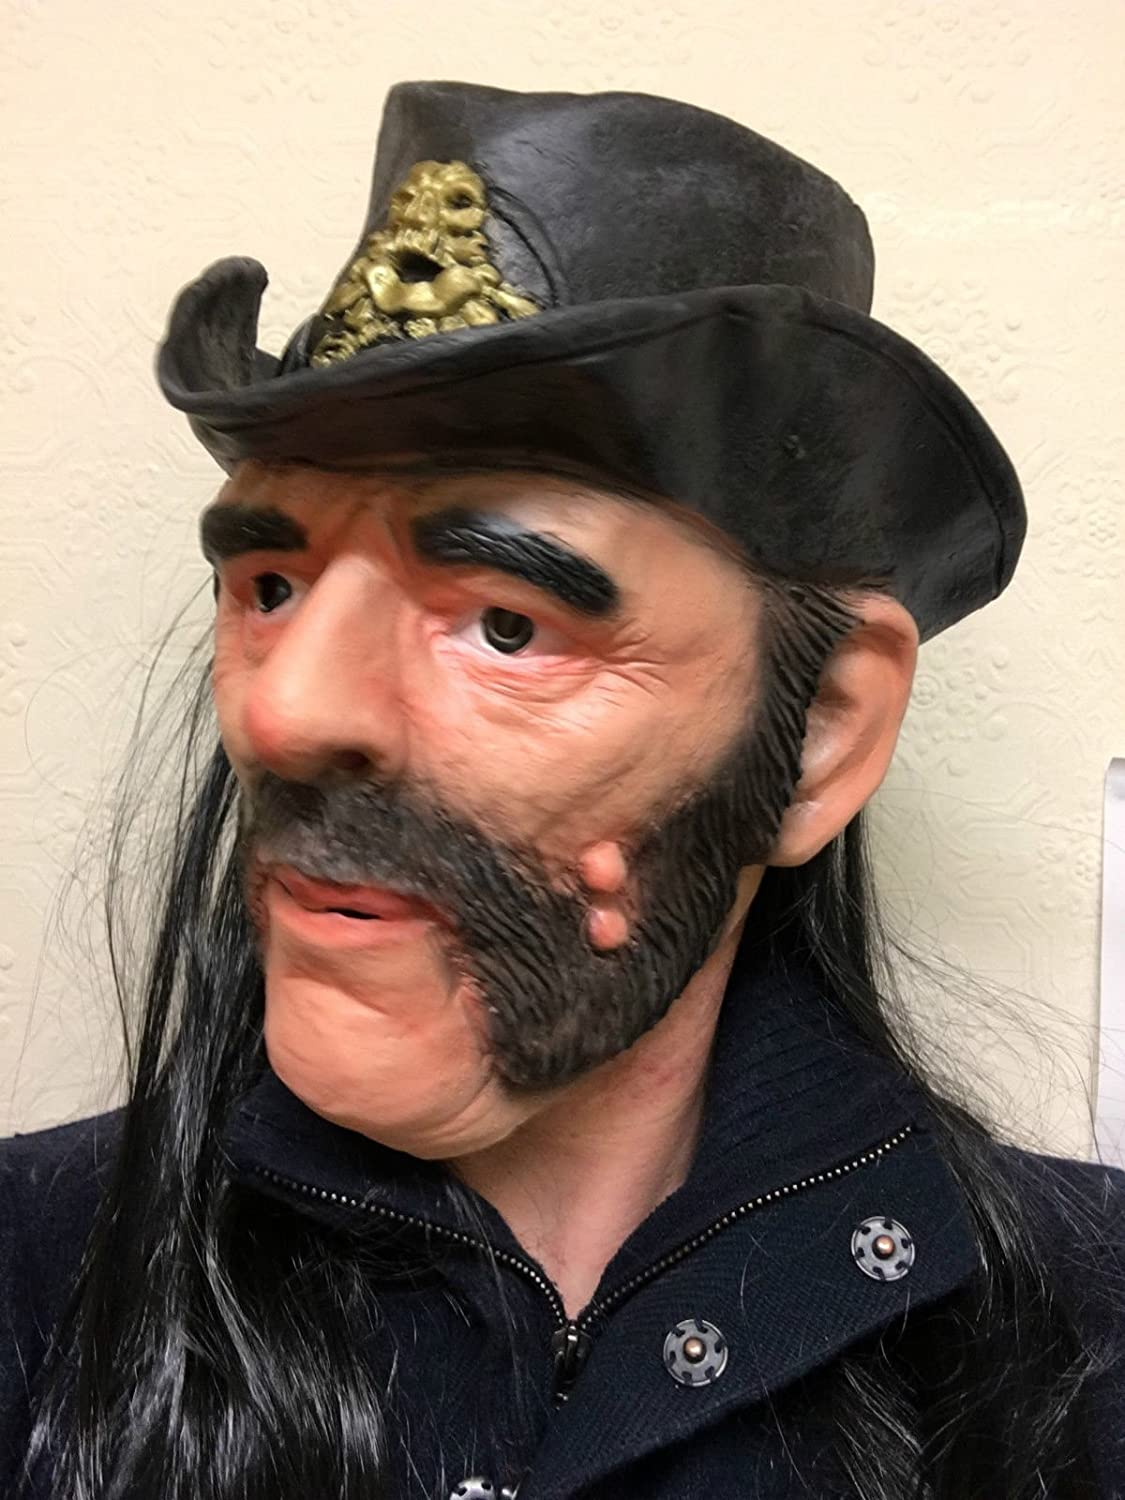 Card Face and Fancy Dress Mask Smile Celebrity Mask Brian Quinn